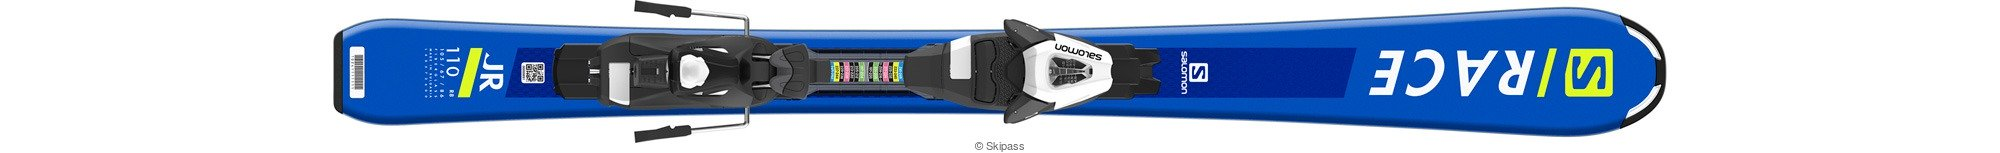 Salomon S/race jr s